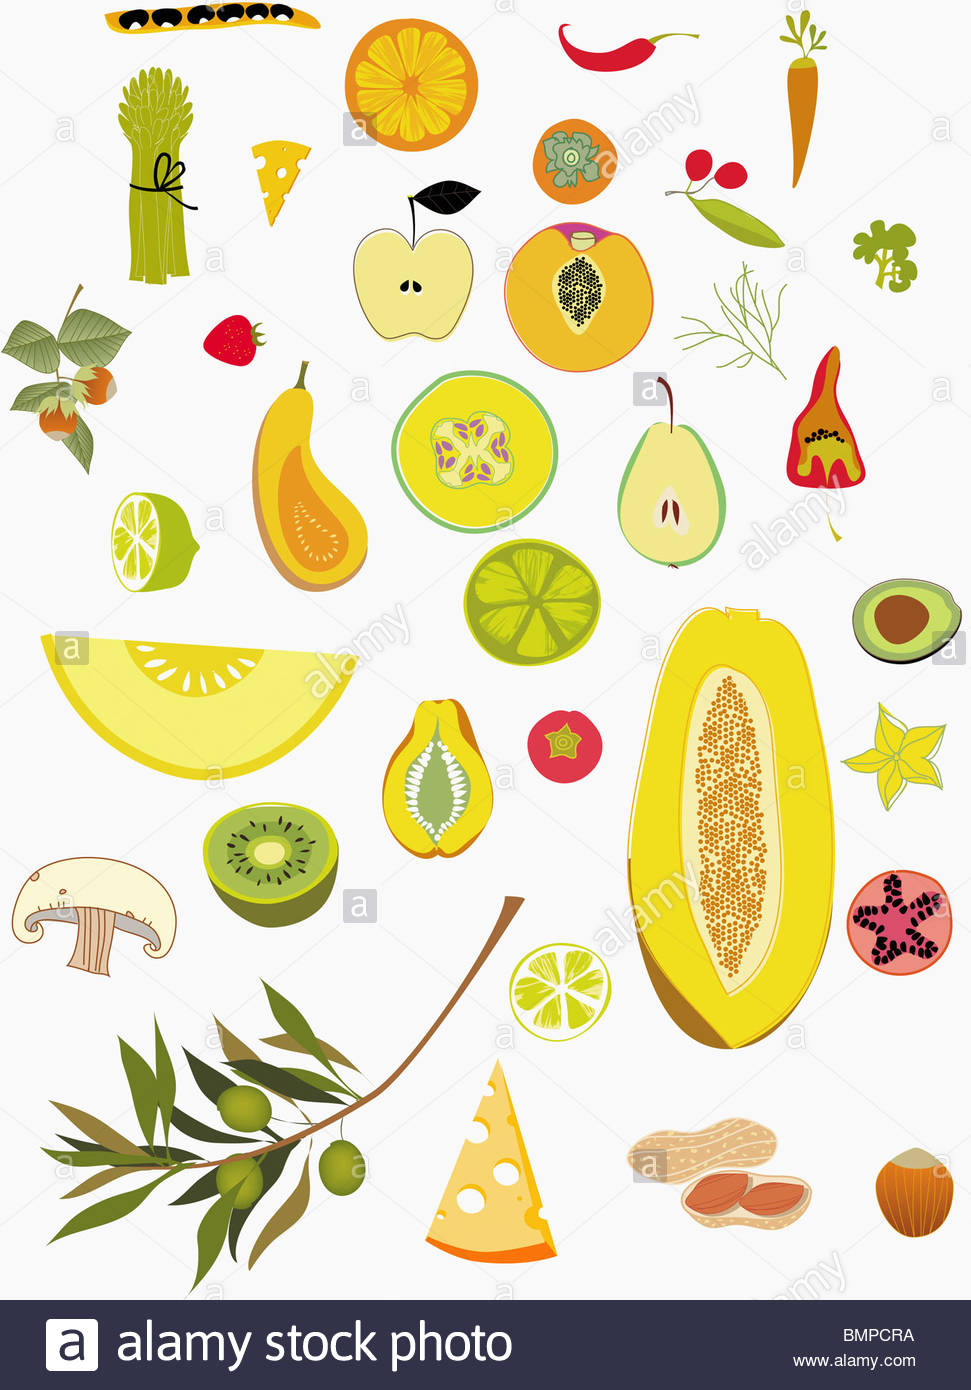 Variety of fruits and vegetables - Stock Image